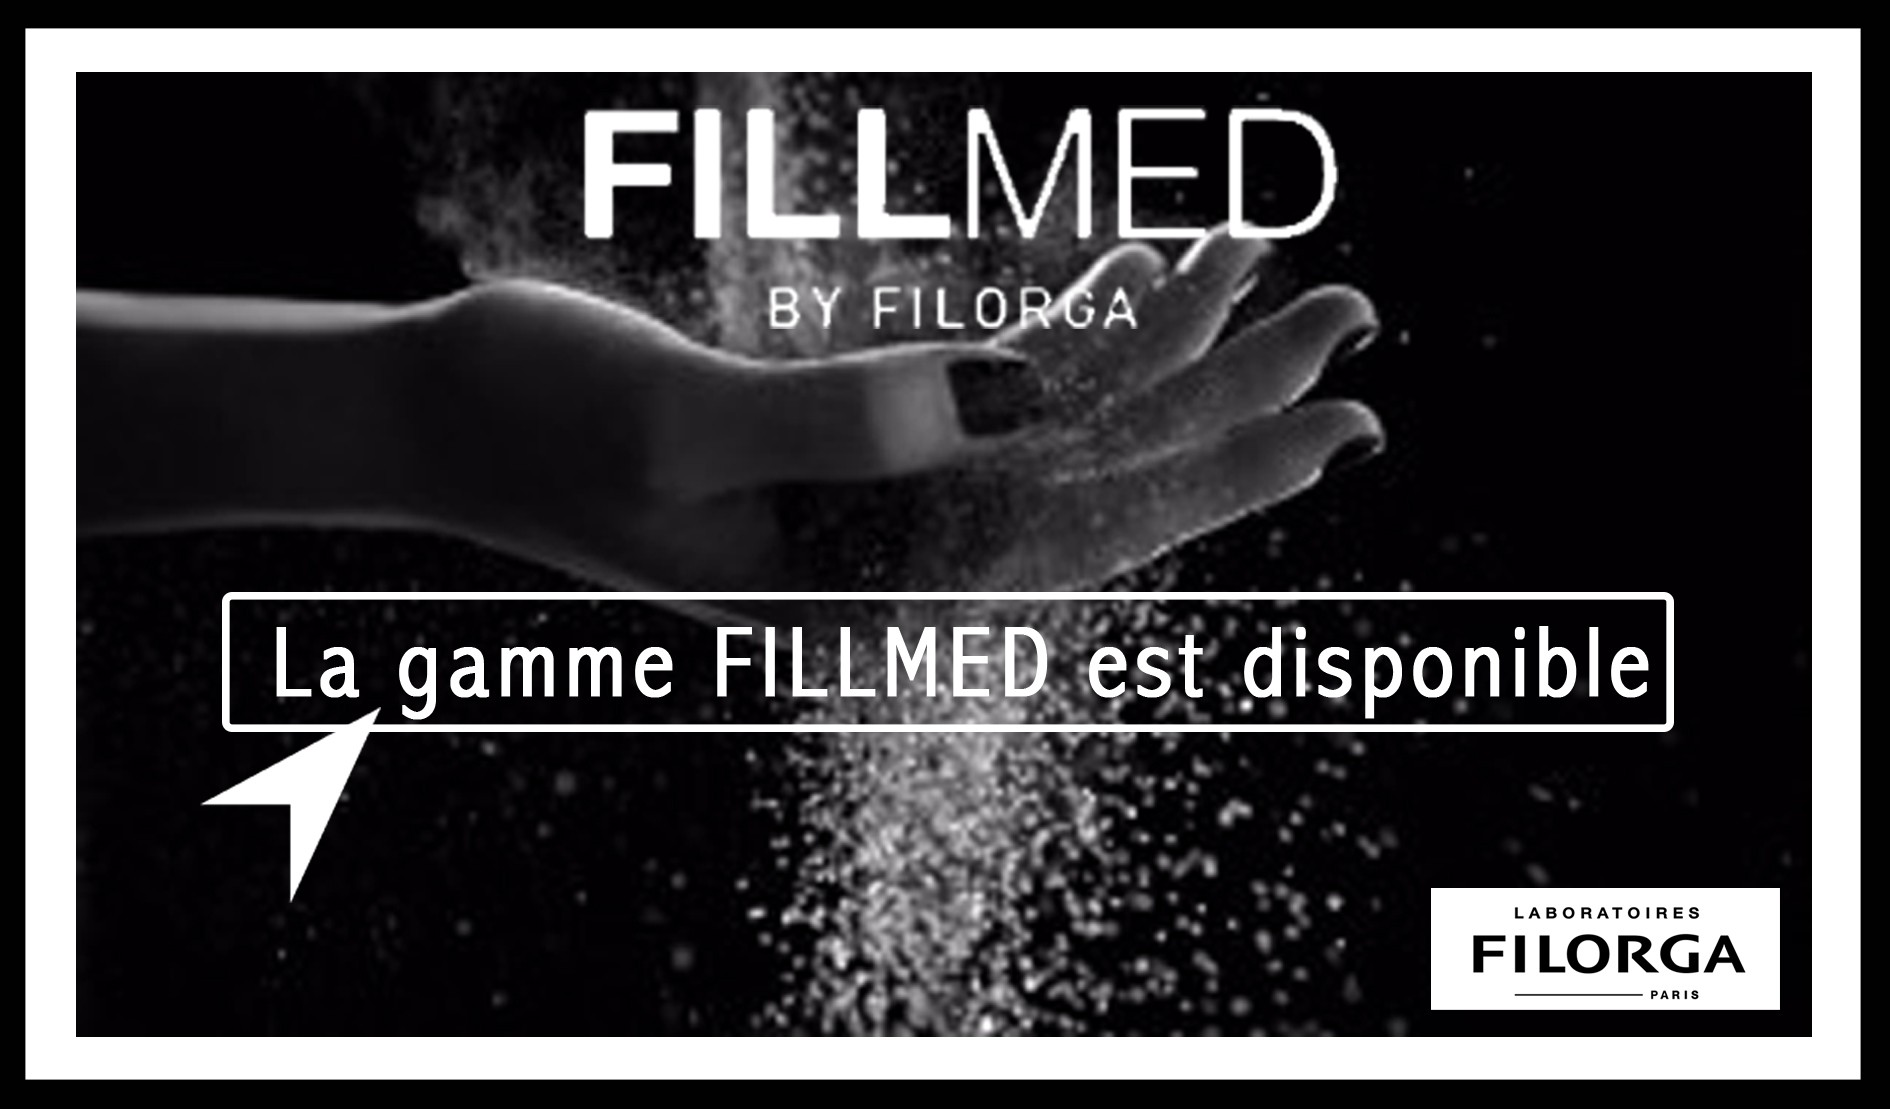 FILLMED BY FILORGA